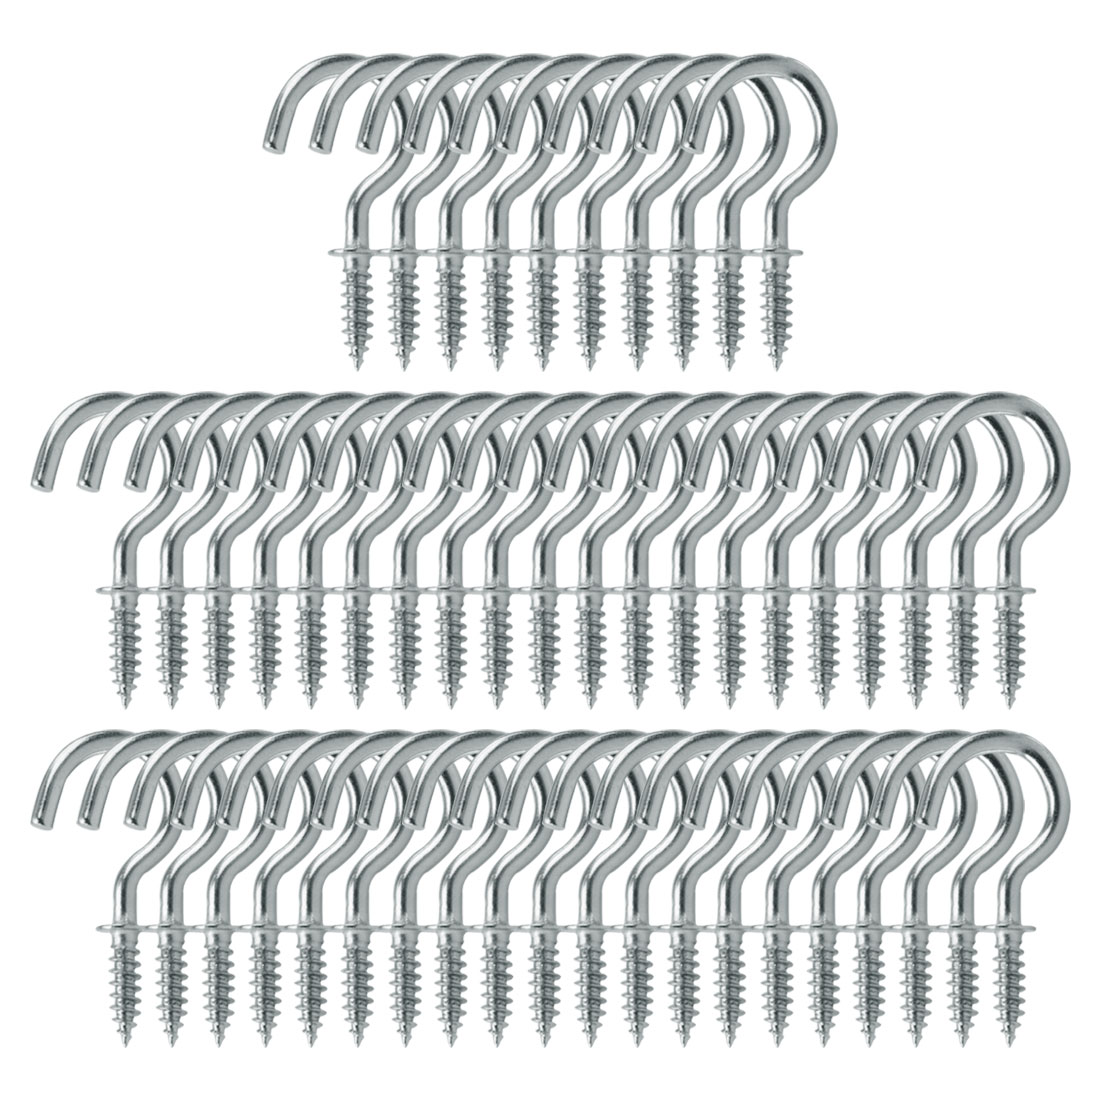 50pcs Cup Ceiling Hooks 3/4 Inch Chrome Plating Screw Holder Silver White